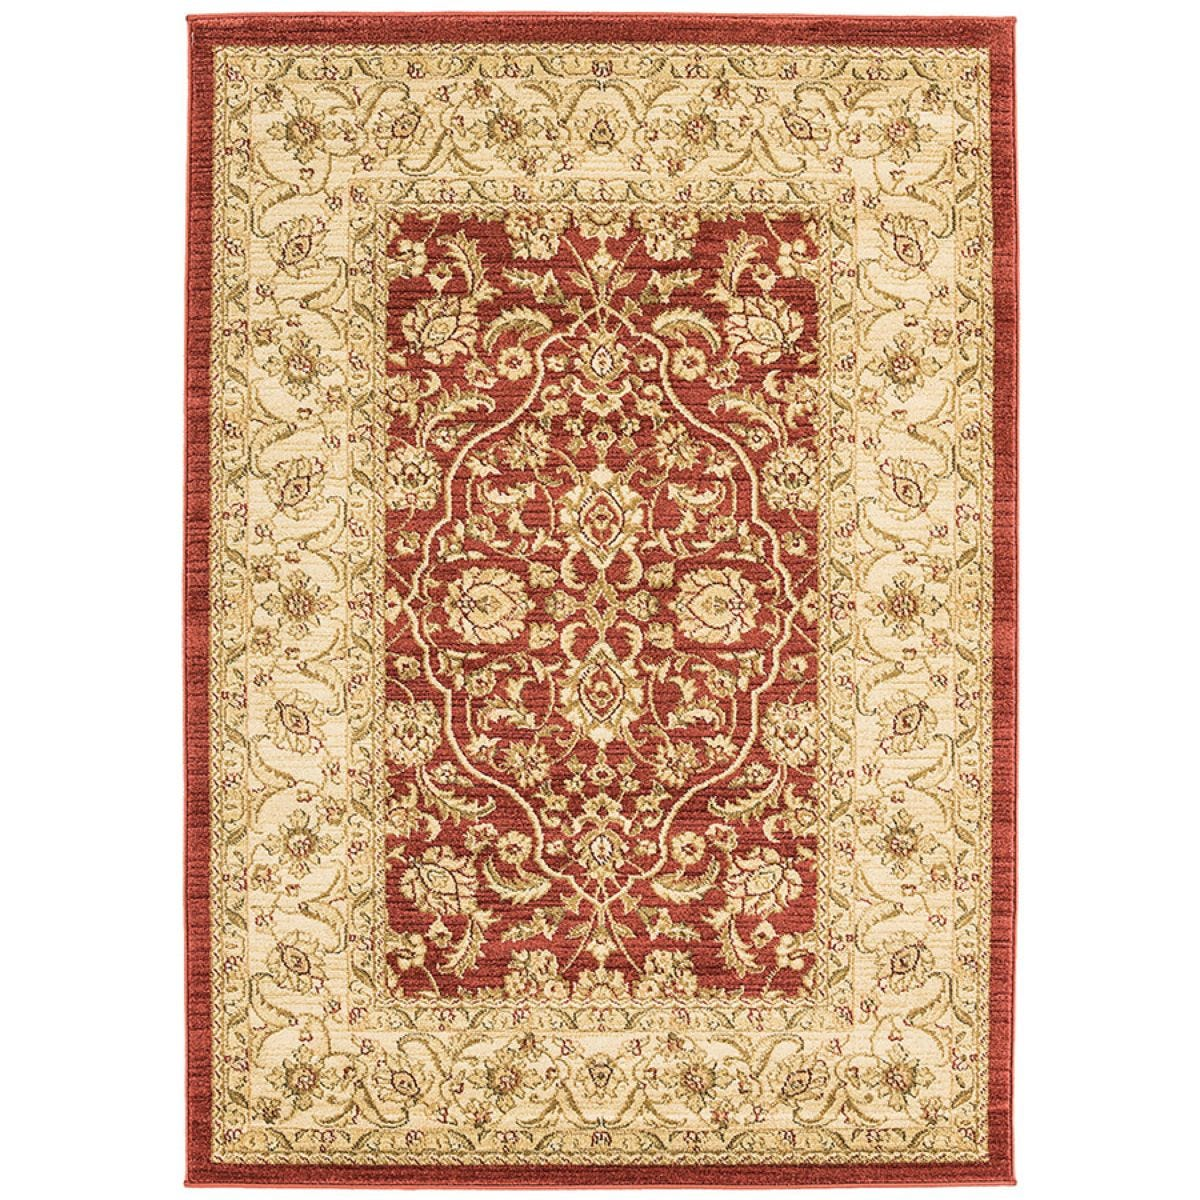 Asiatic Windsor Rug, 80 x 150cm - Red